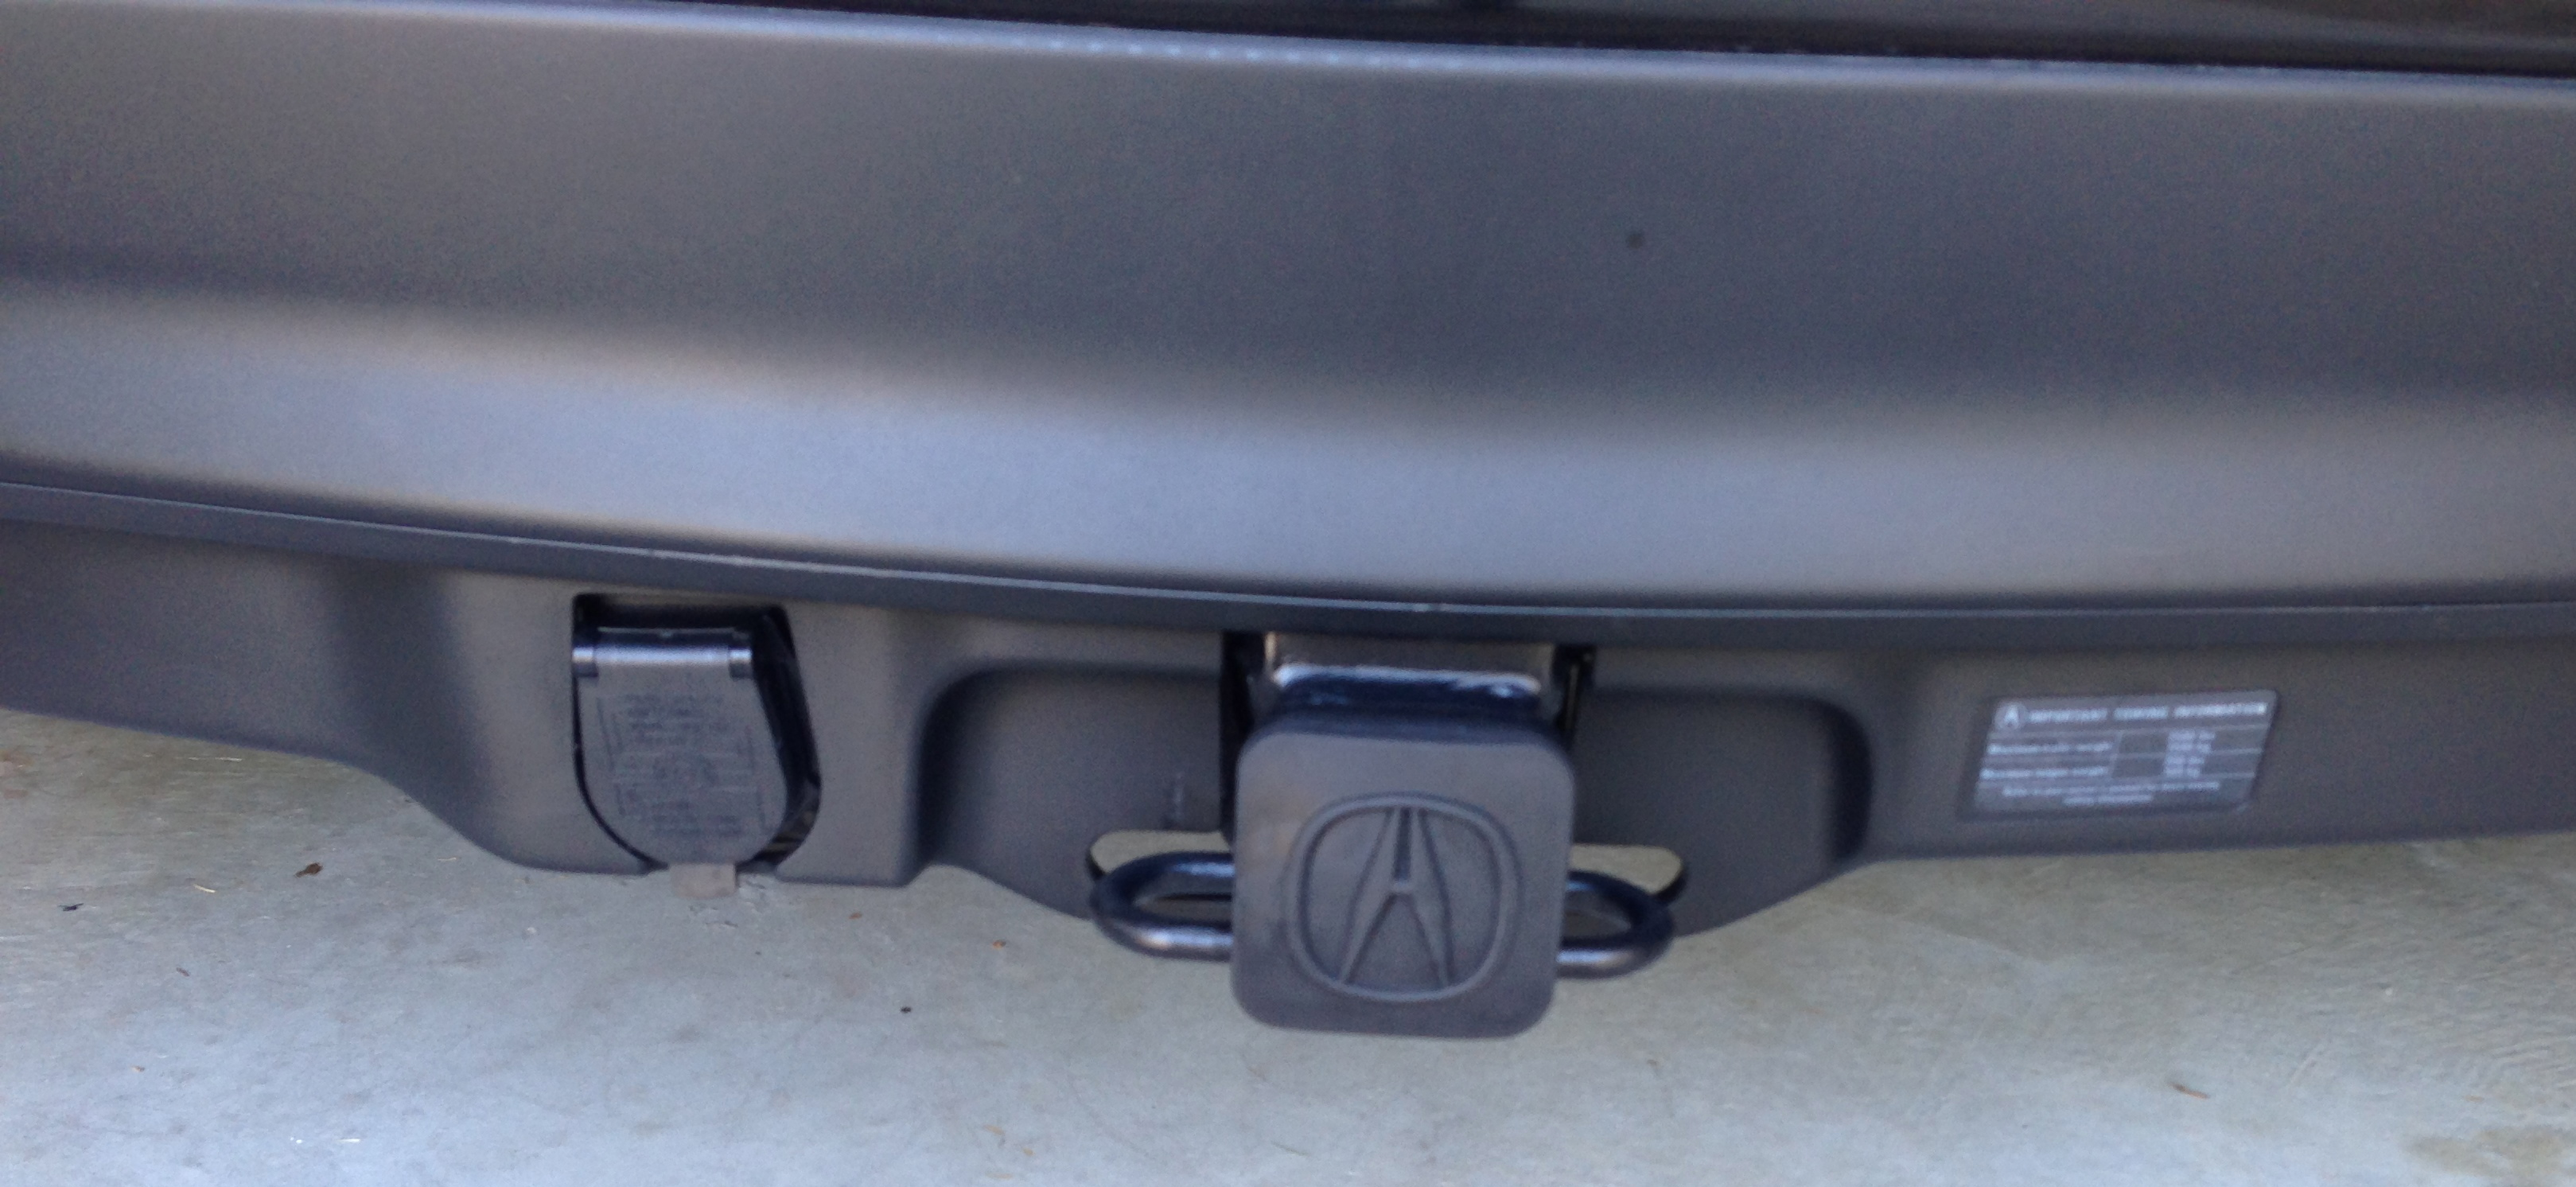 Towing Hitch Page Acura MDX Forum Acura MDX SUV Forums - Acura mdx tow hitch